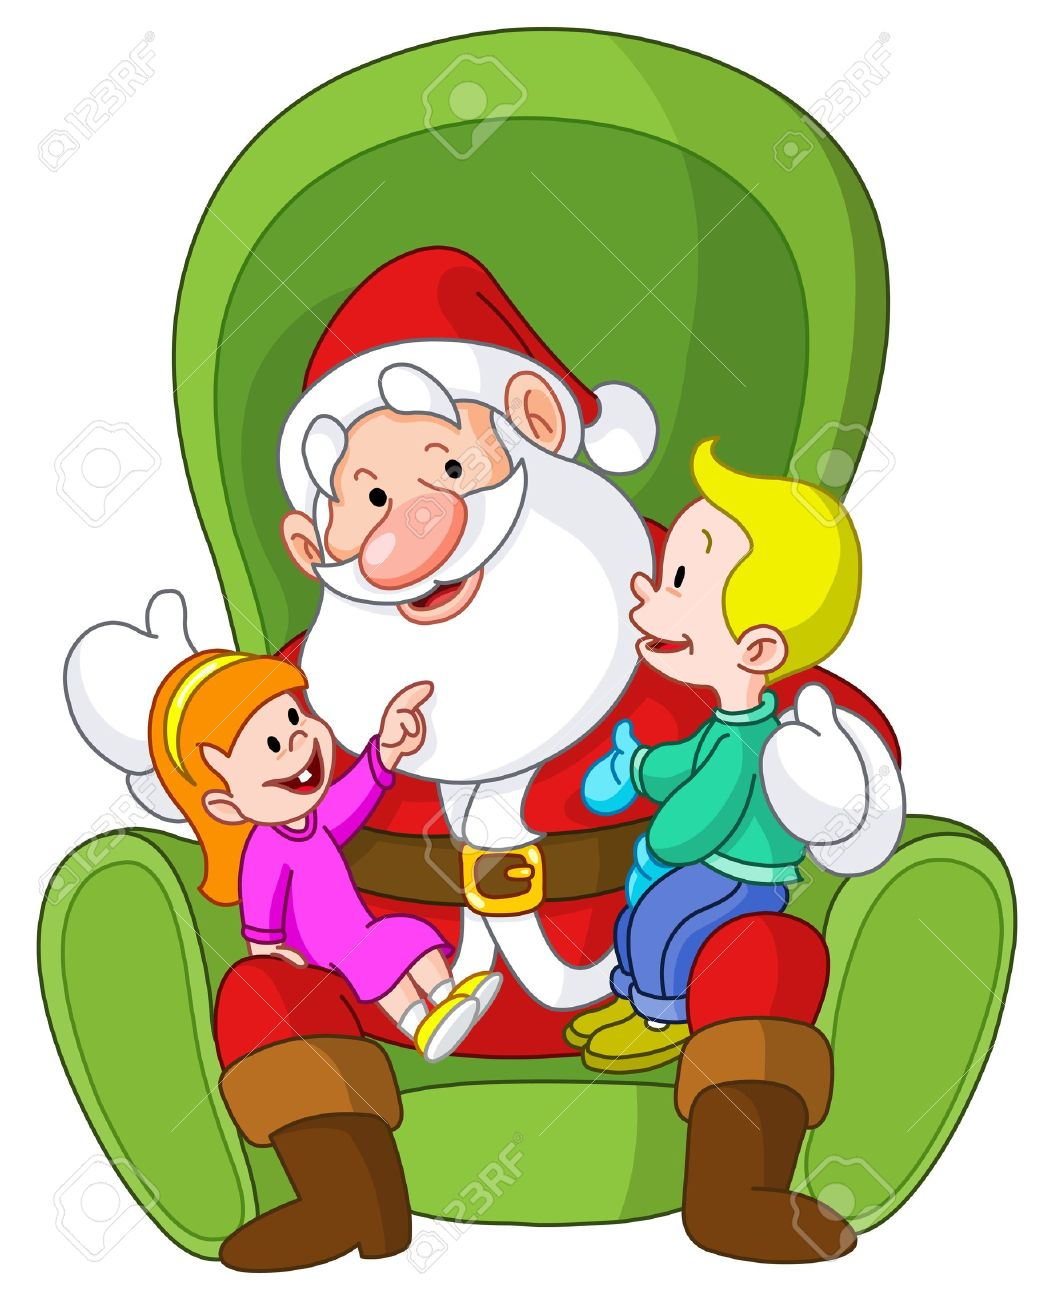 Image result for free image of child sitting on SANTA's lap